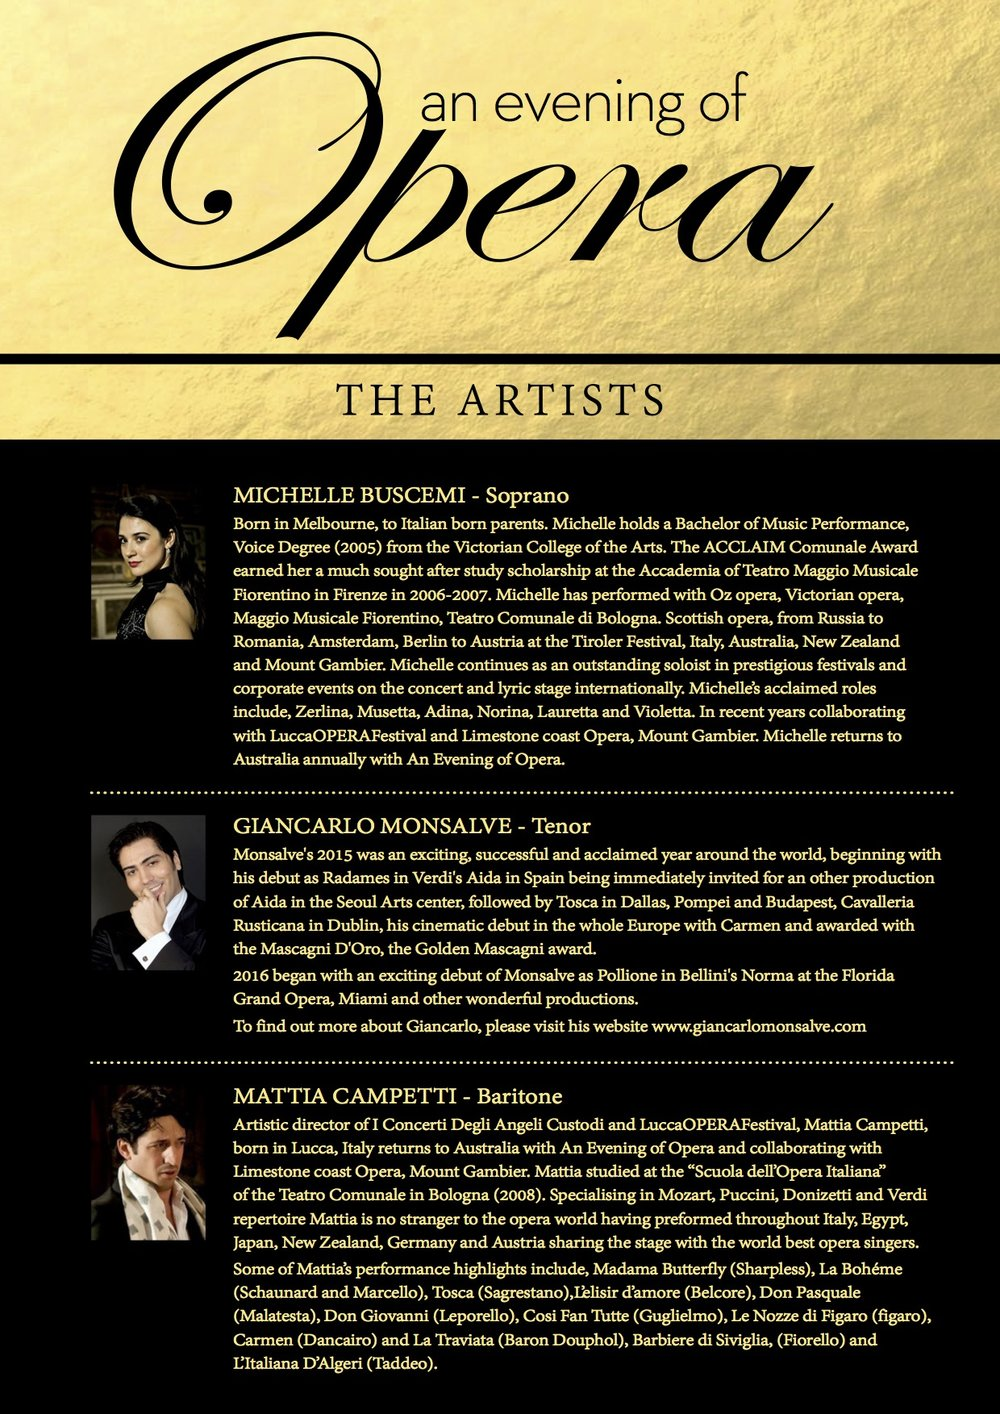 An Evening of Opera 2018 Sponsorship Package (dragged).jpg